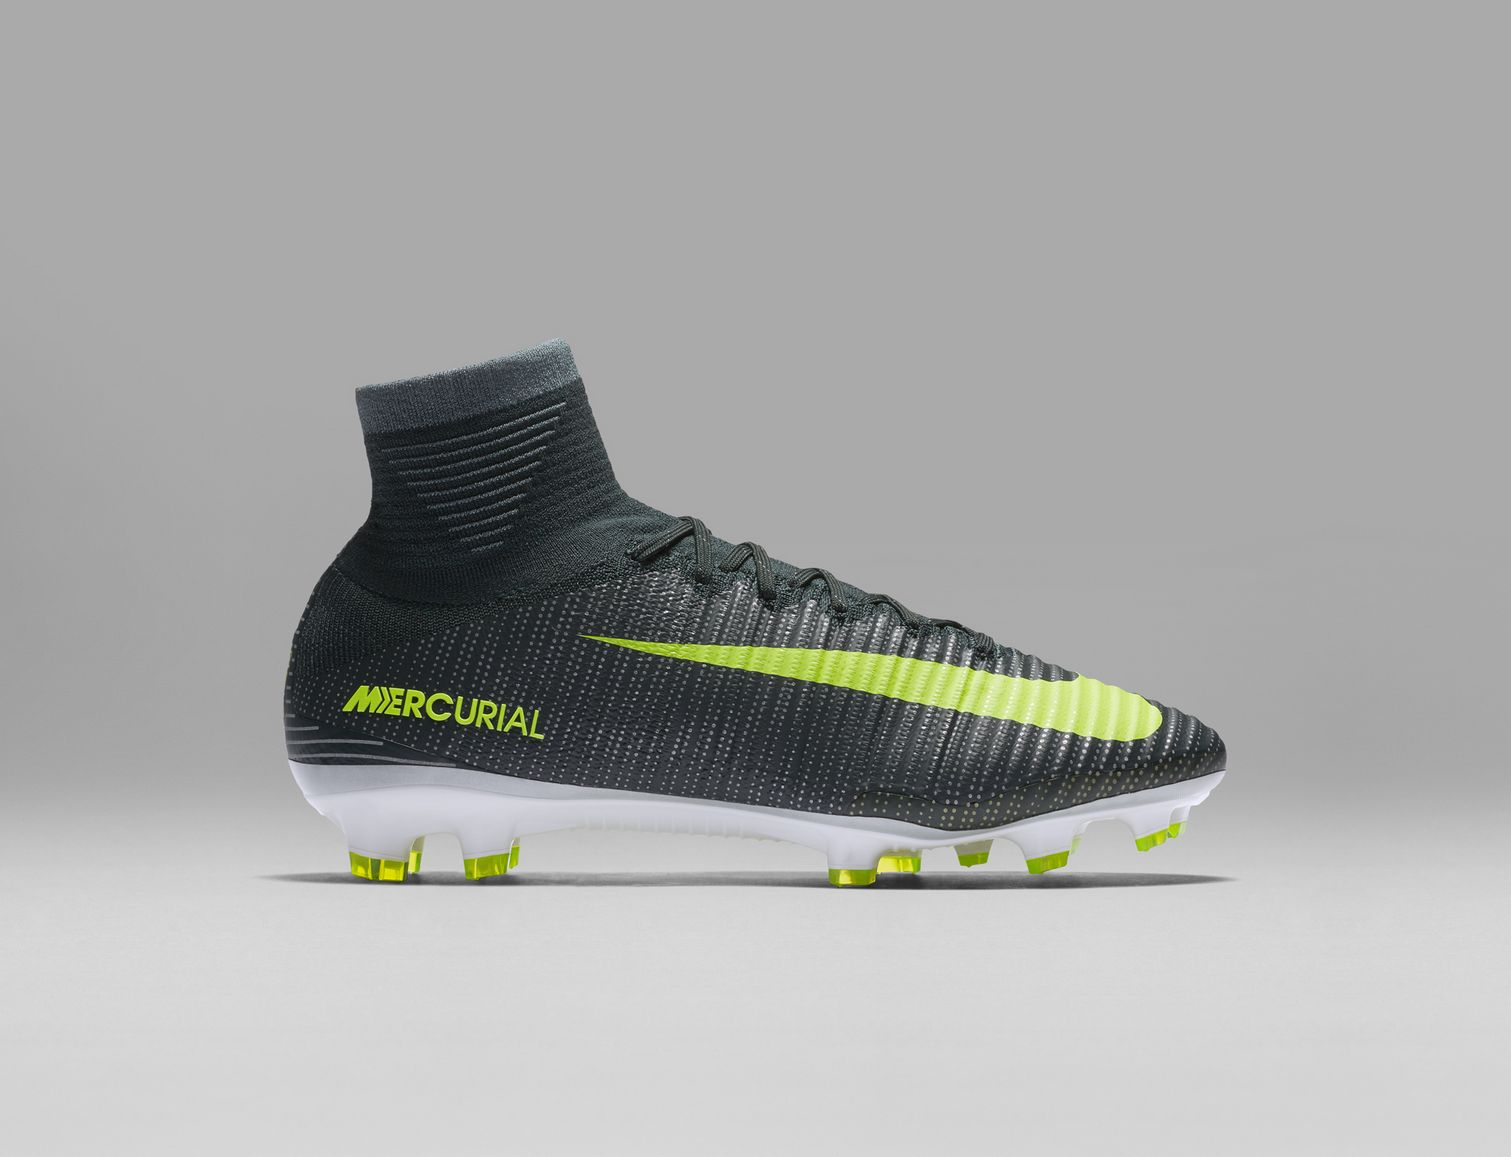 1eedec34b3bfe Botines Nike Mercurial Superfly «Discovery» de CR7